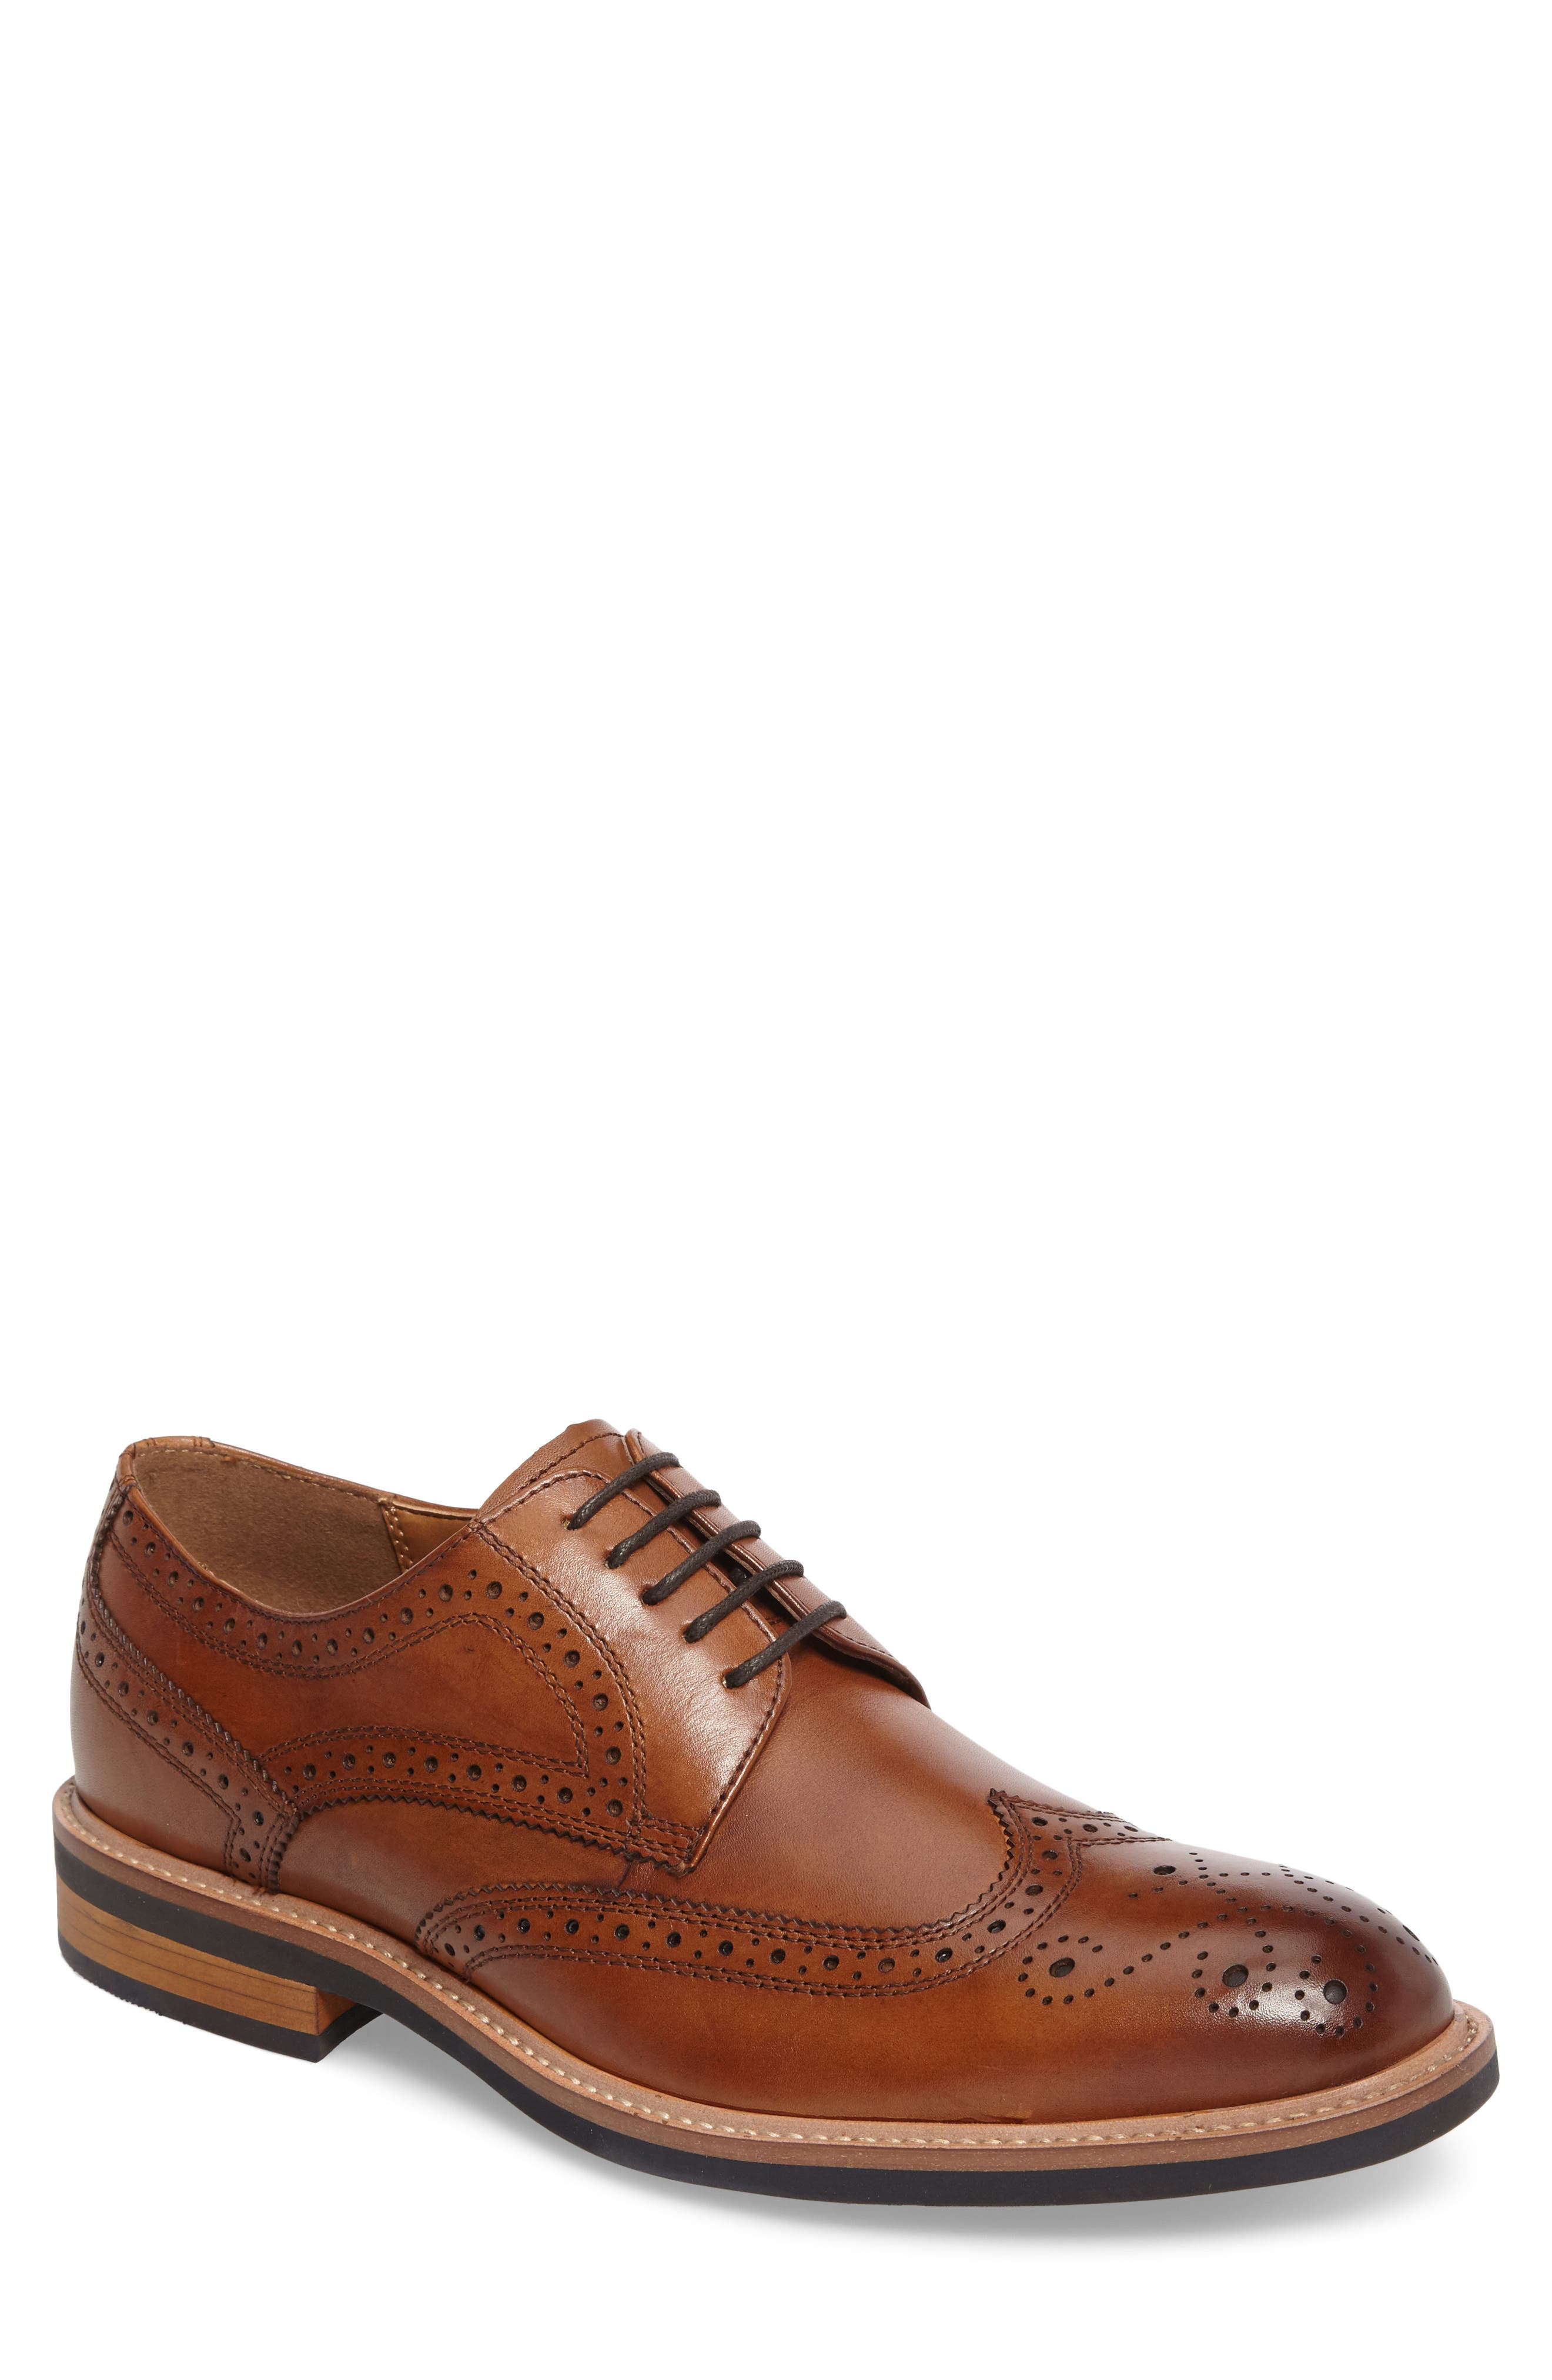 Kenneth Cole Reaction Wingtip,                             Main thumbnail 1, color,